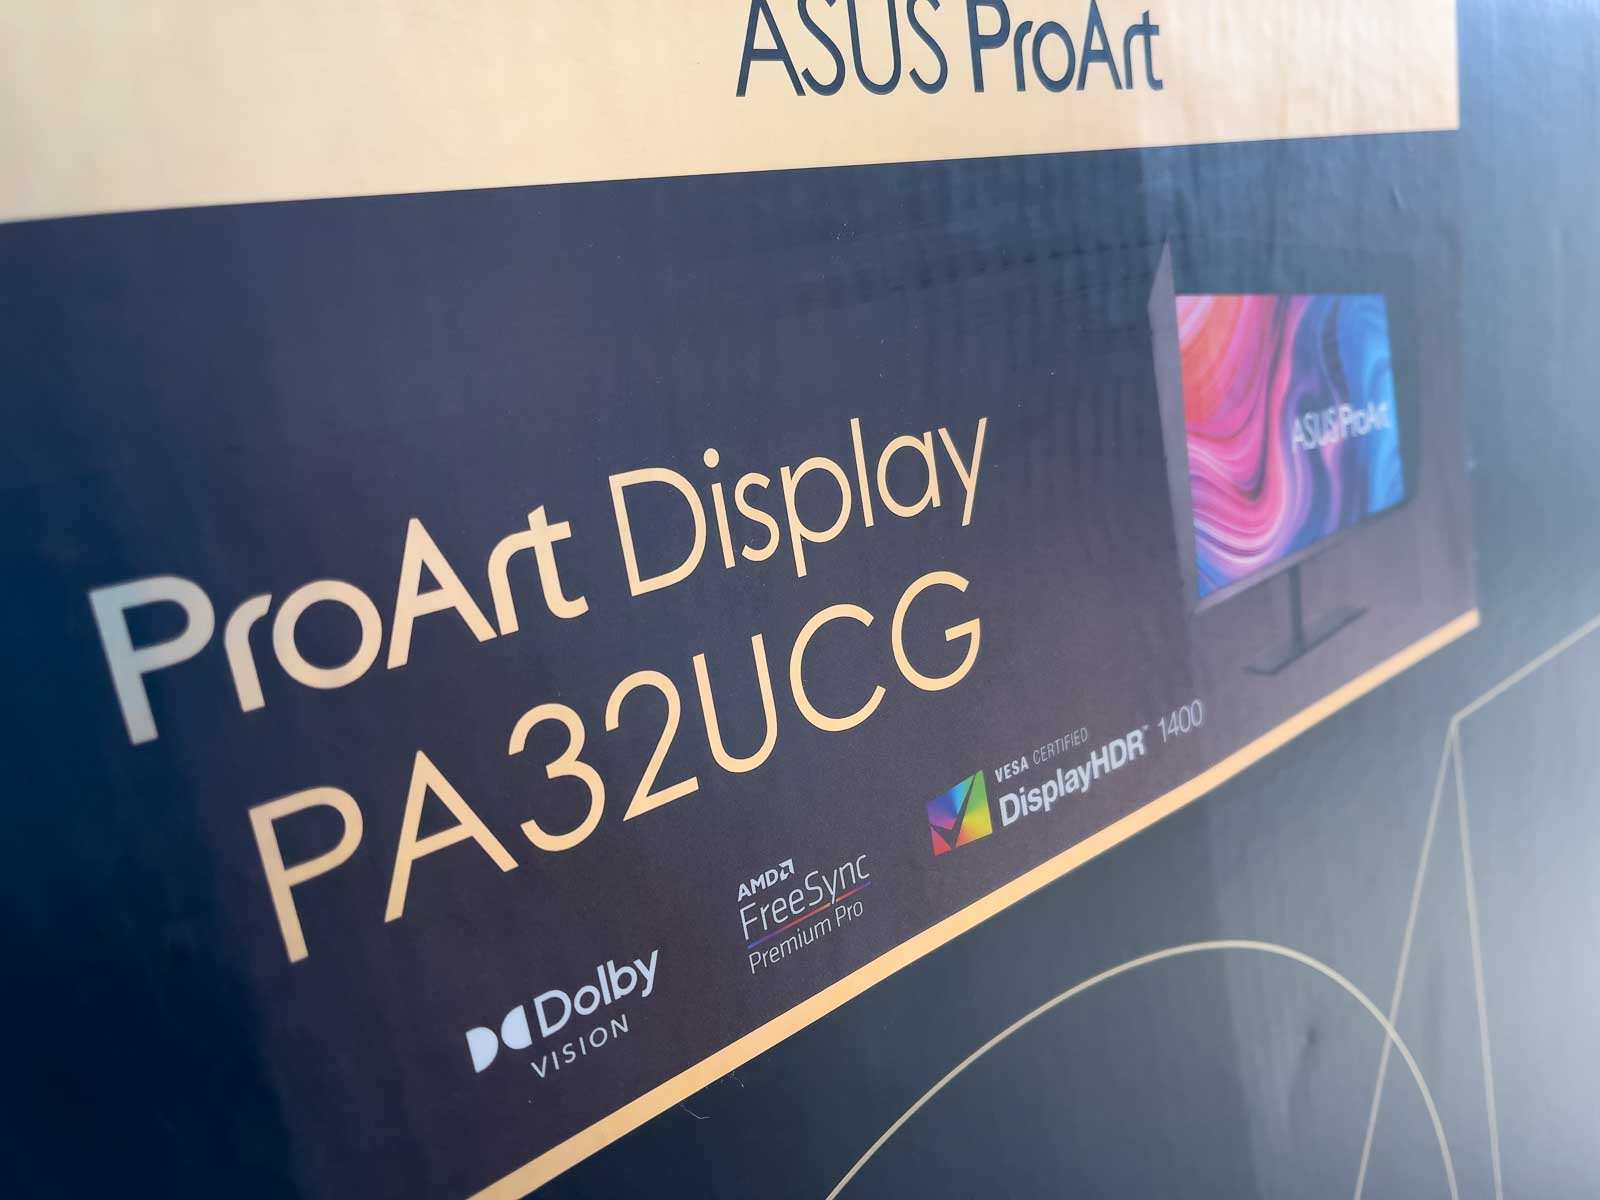 ASUS PA32UCG unboxing